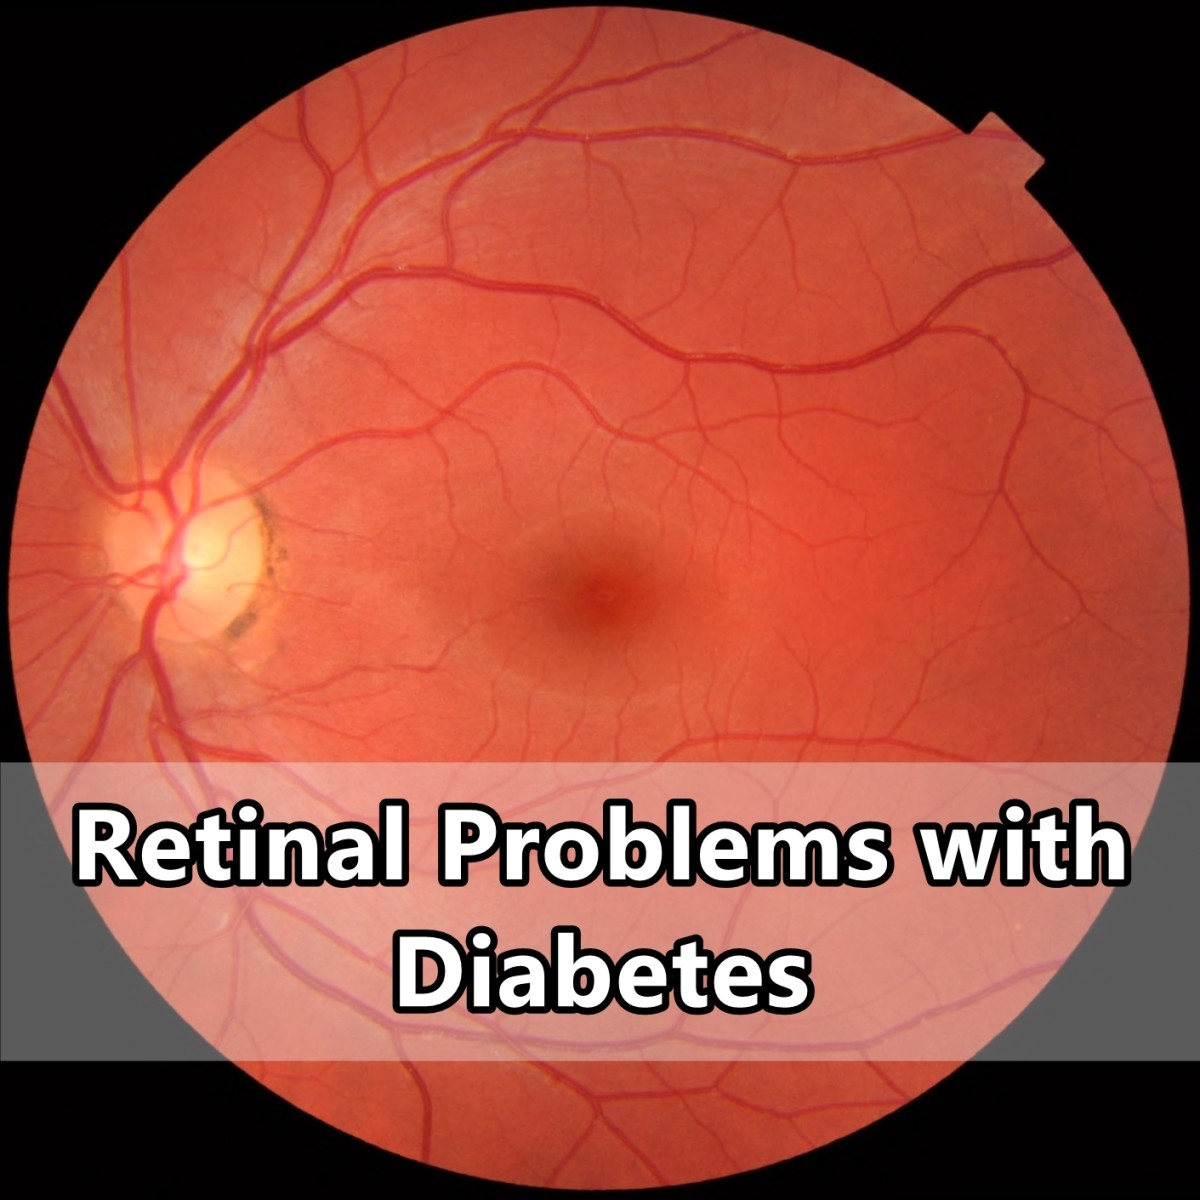 Retinal Problems with Diabetes